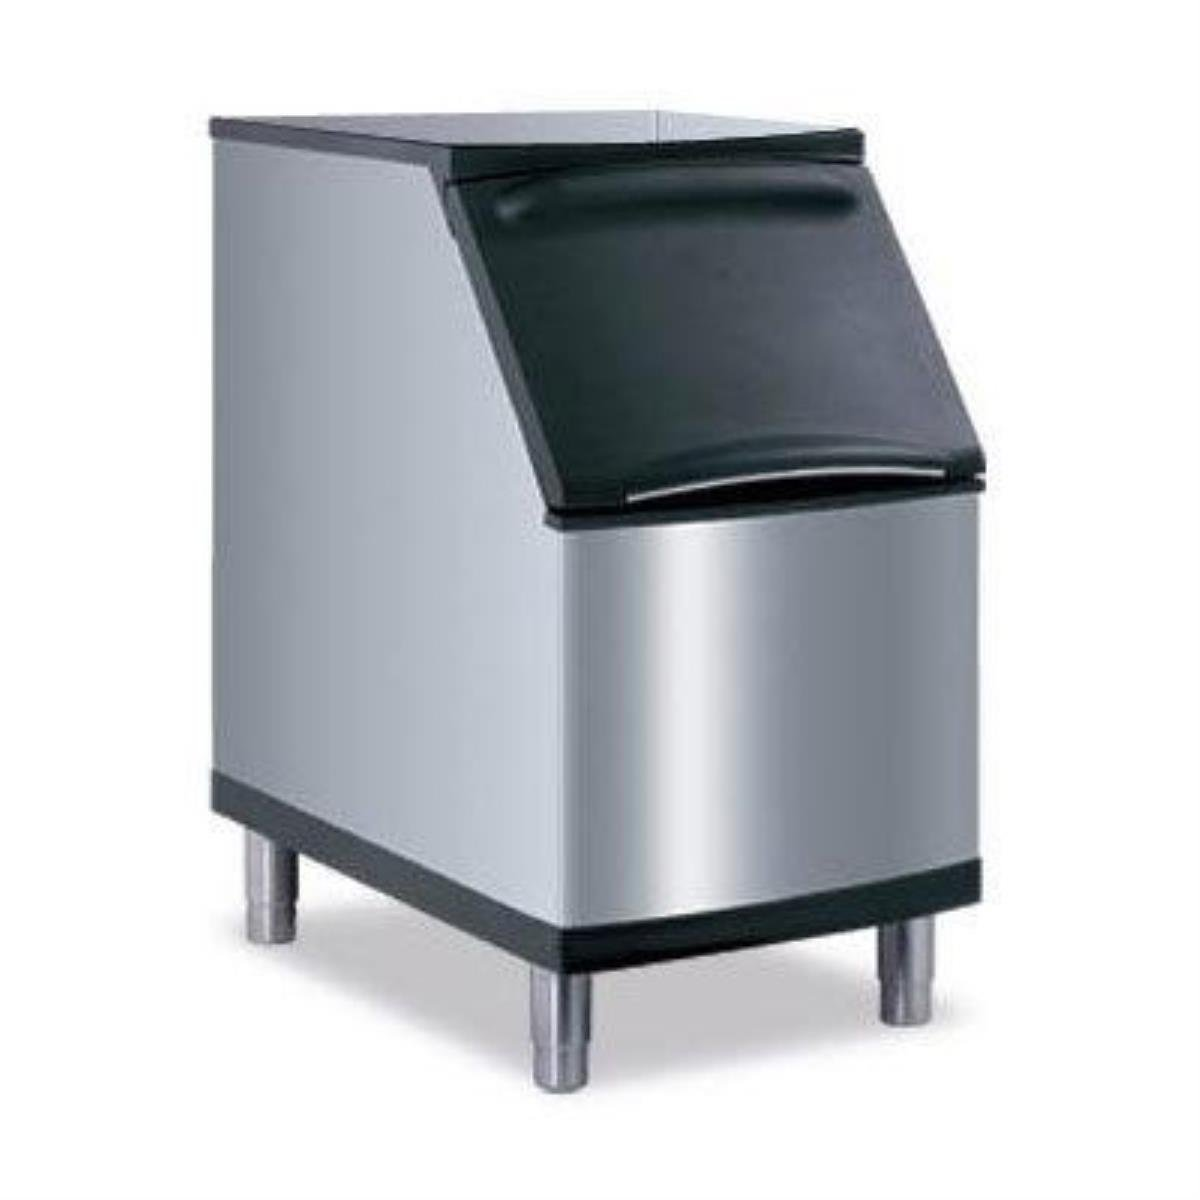 Manitowoc B-320 Ice Bin - 210 Pound Capacity Ice Storage Capacity